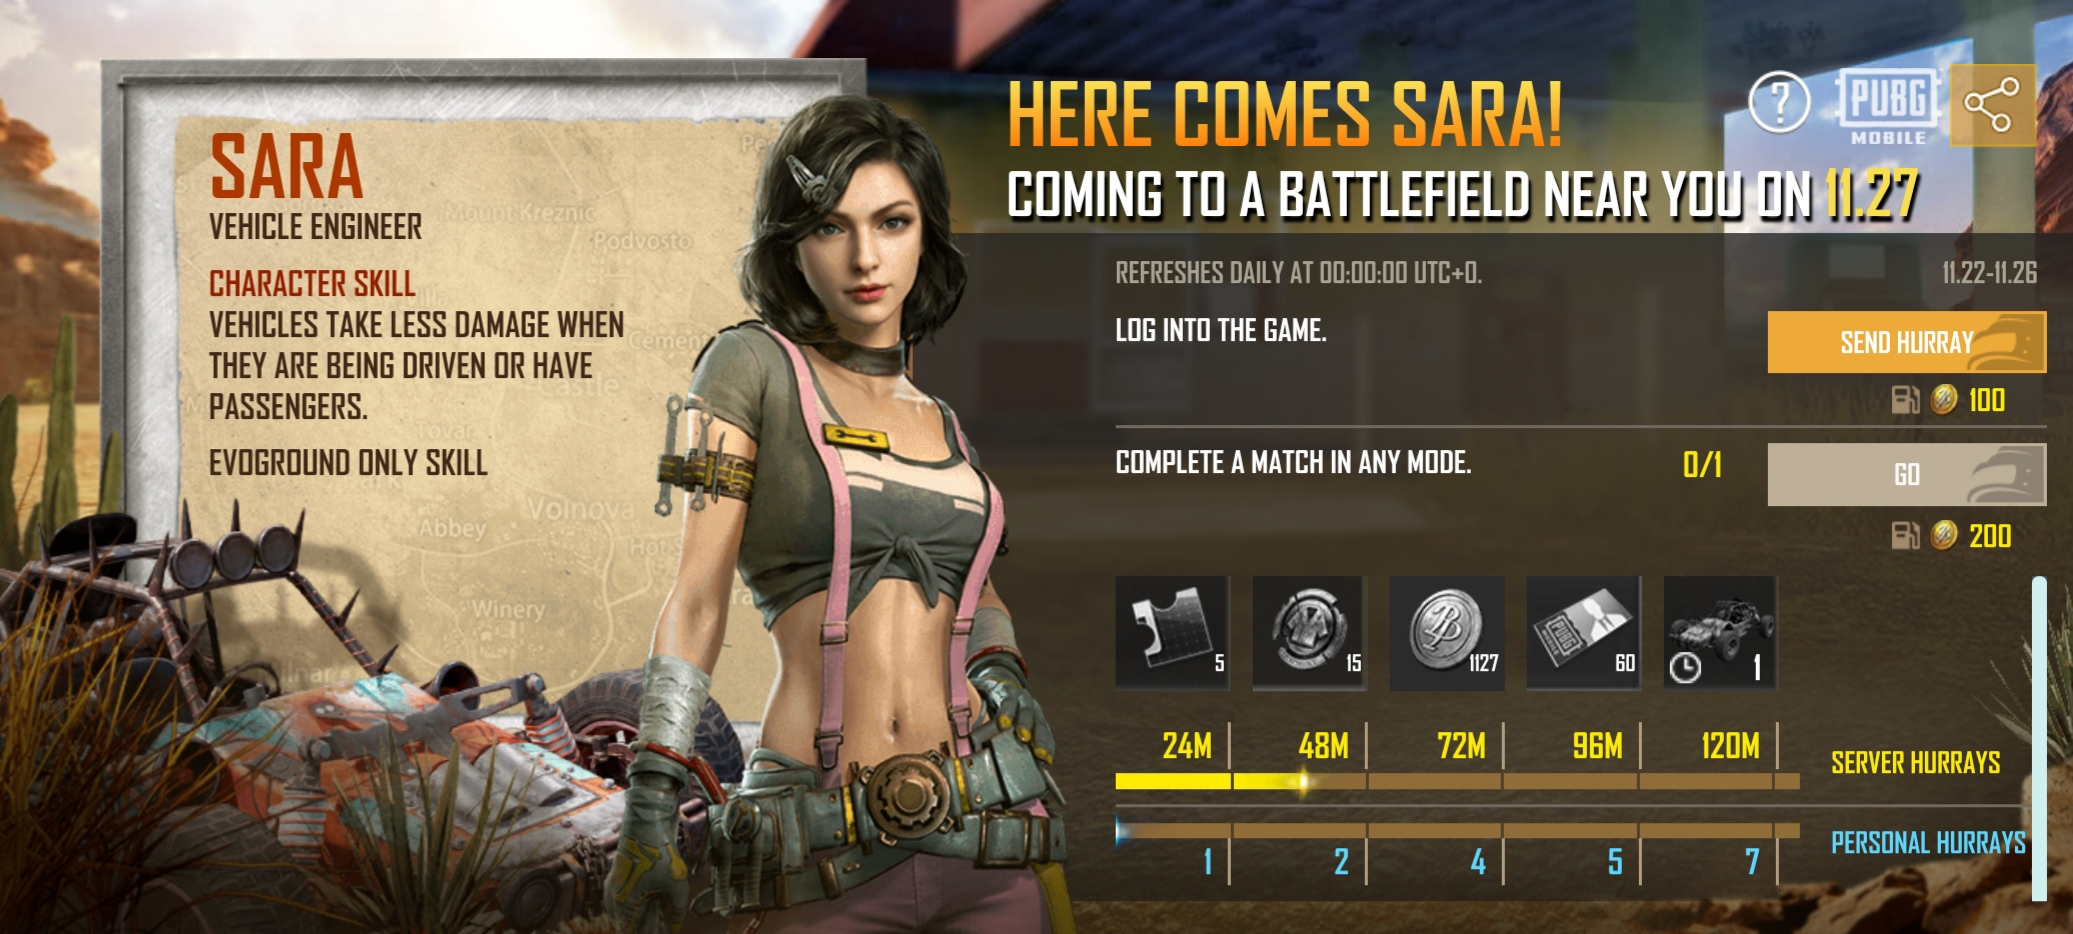 PUBG Mobile places a notice for a new character, Sara.